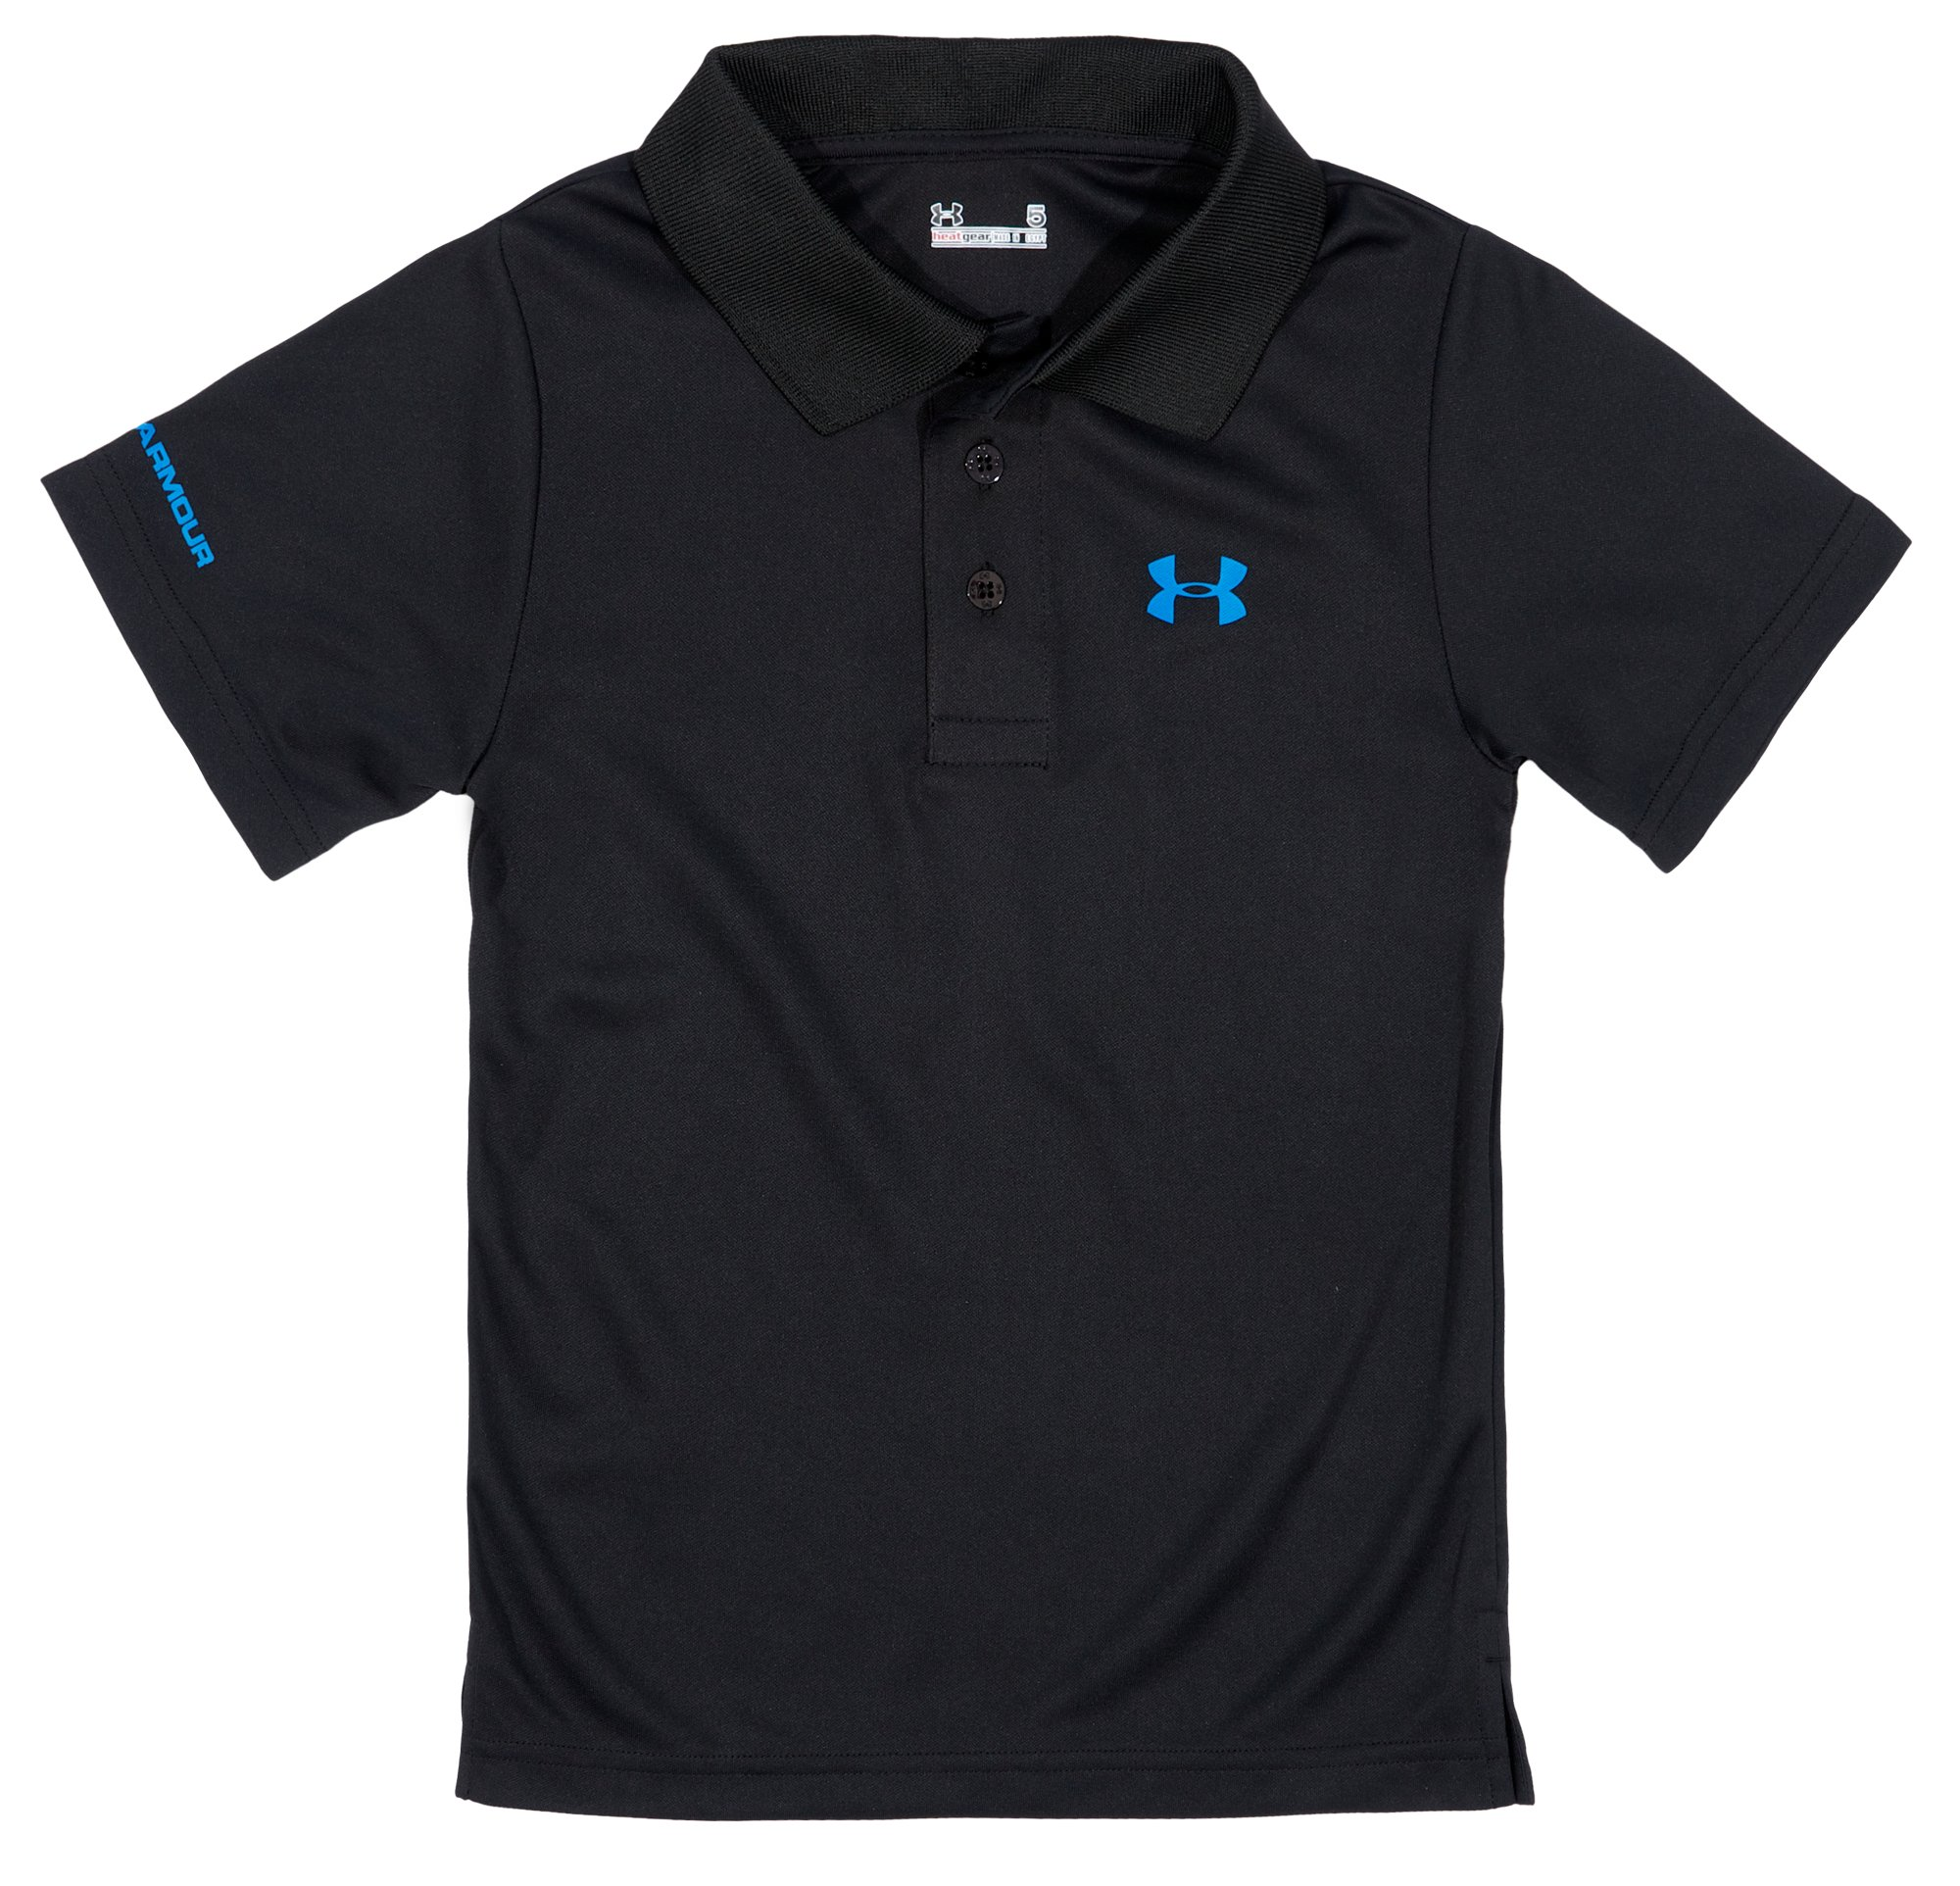 Boys' Pre-School UA Performance Polo, Black , Laydown